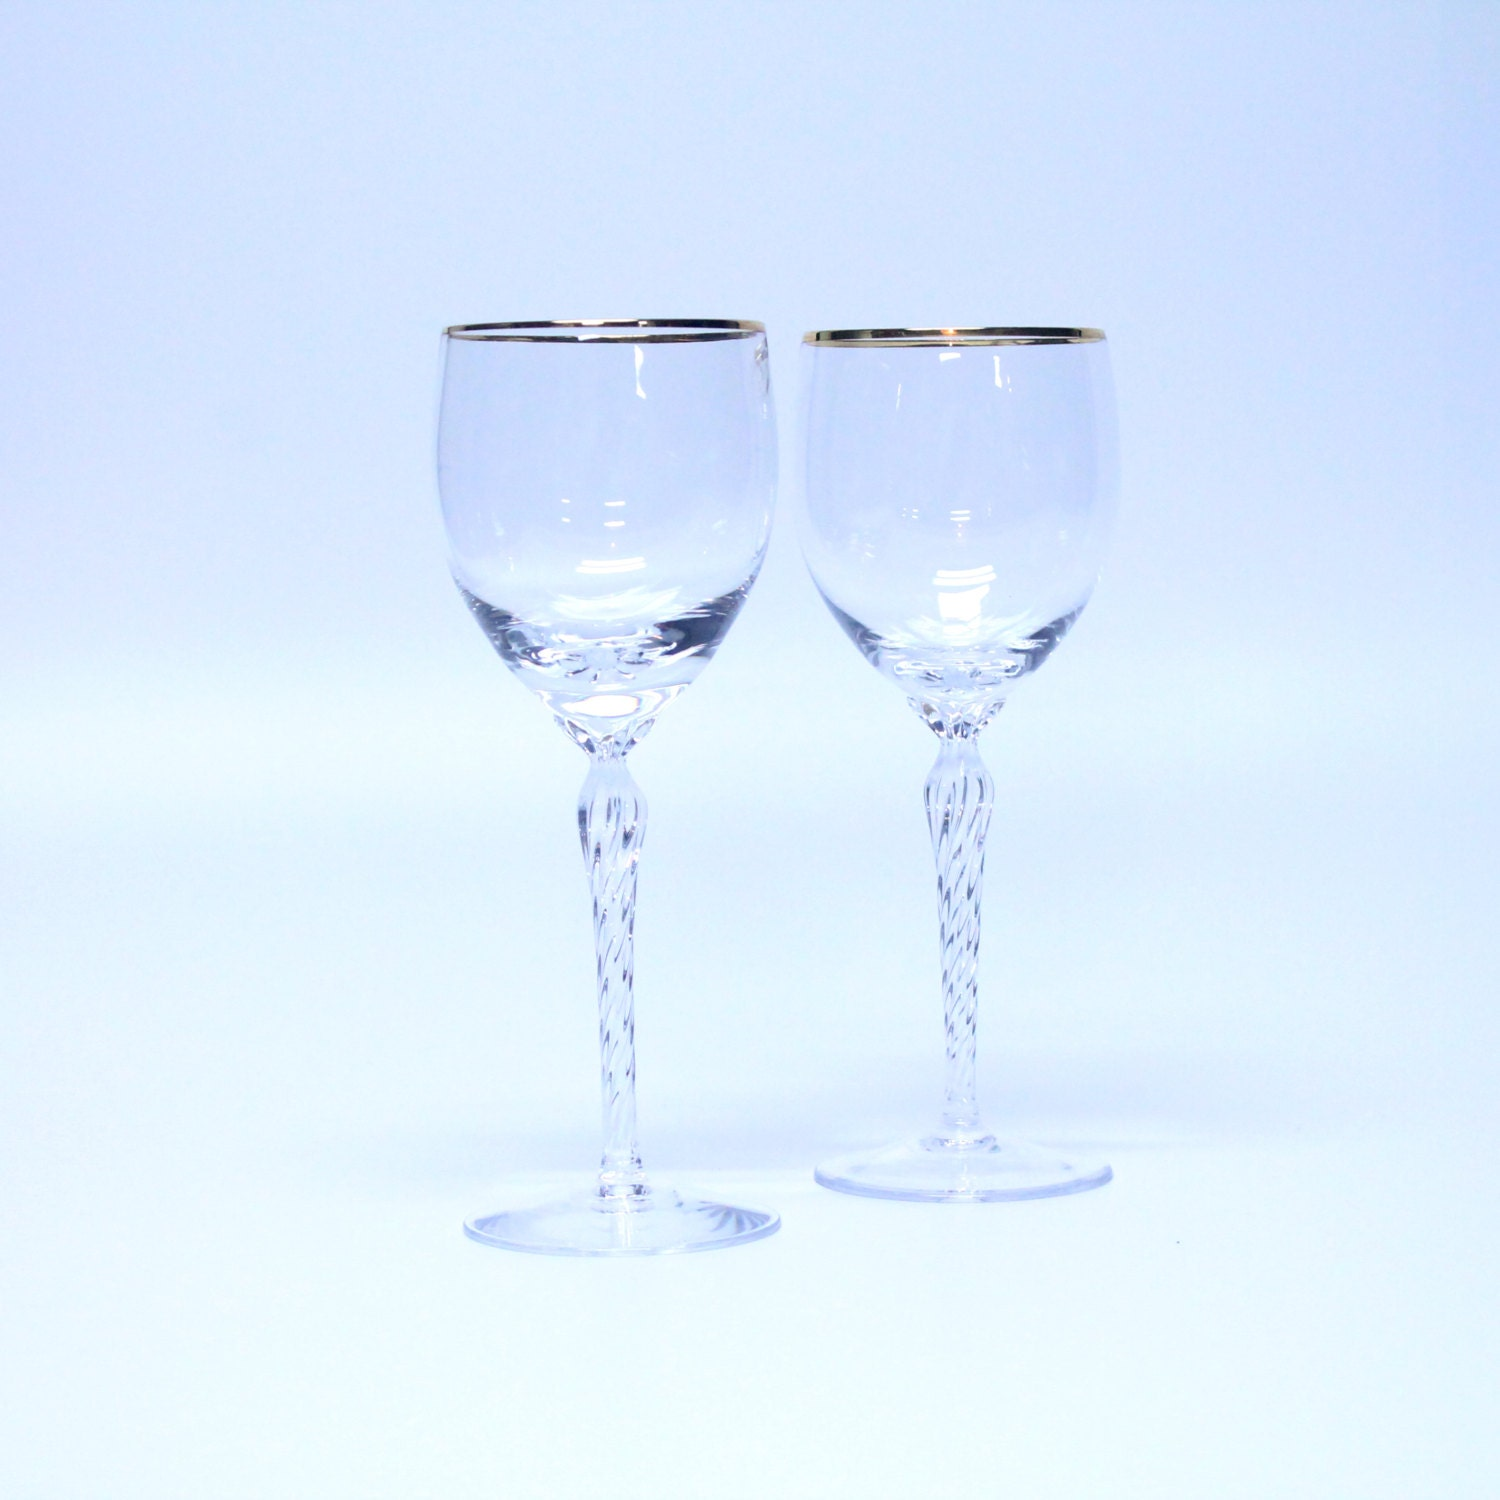 Popular items for gold rimmed on etsy - Lenox gold rimmed wine glasses ...